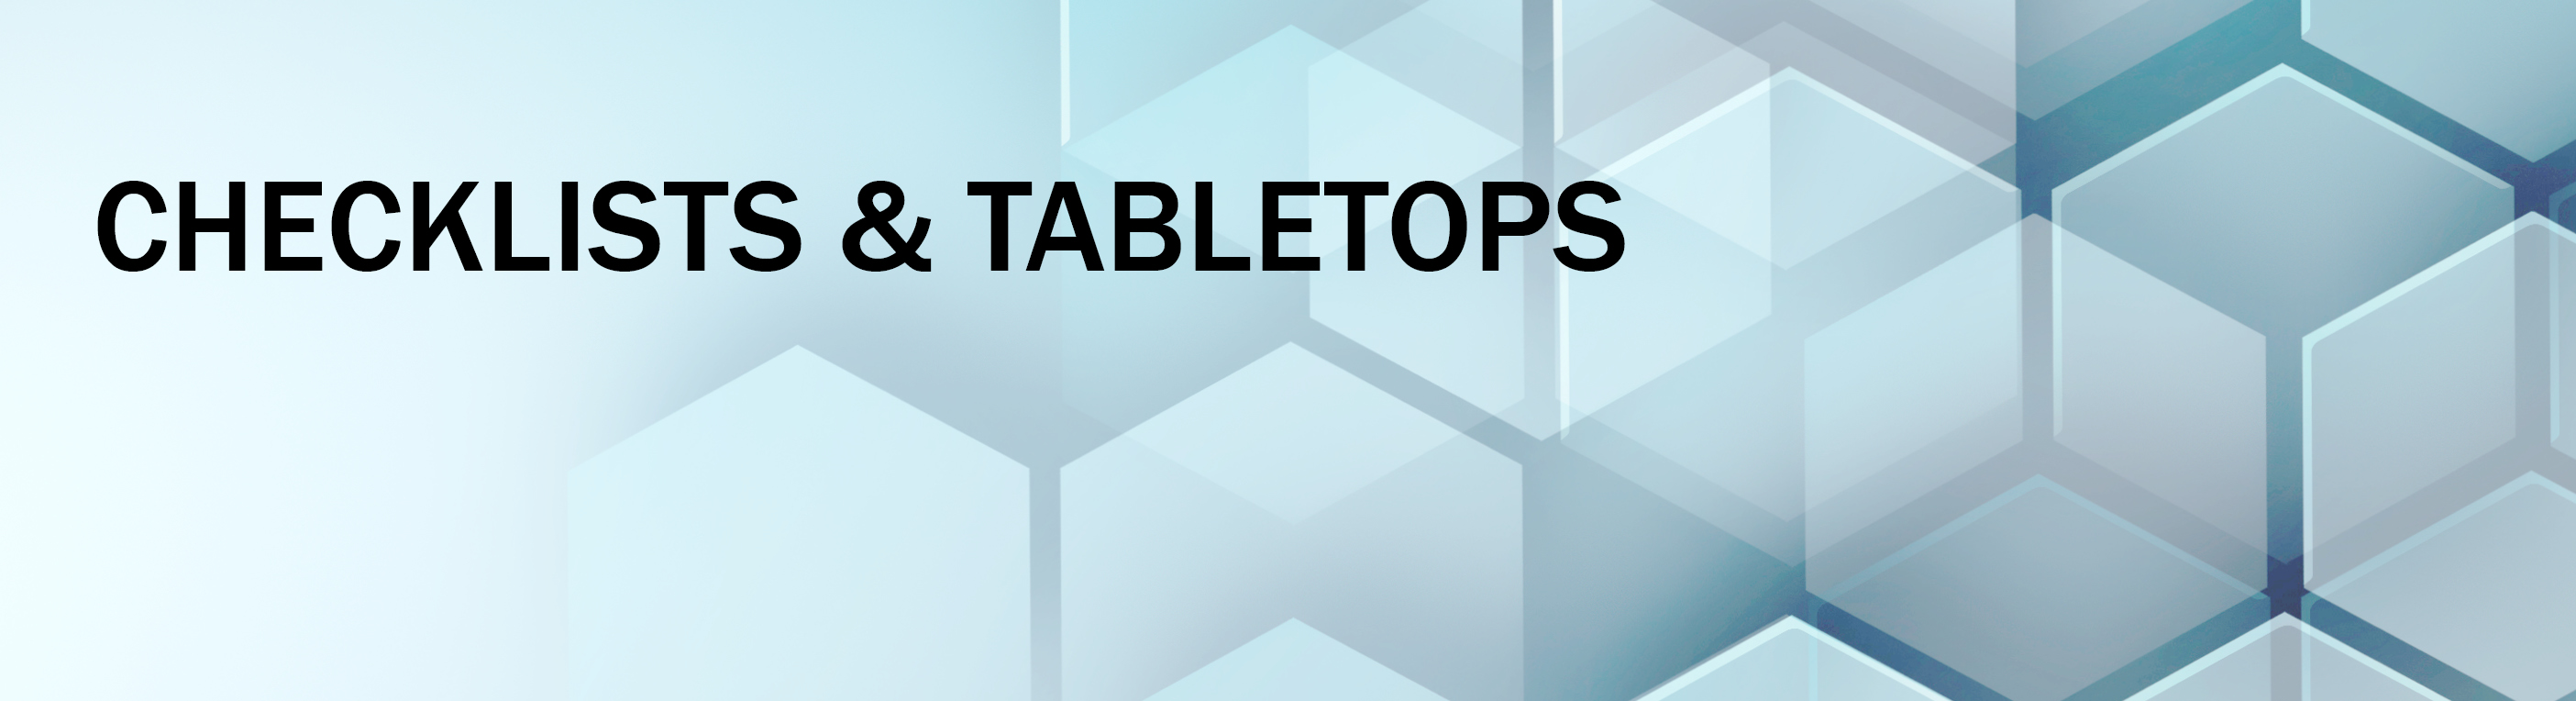 Checklists & Tabletops